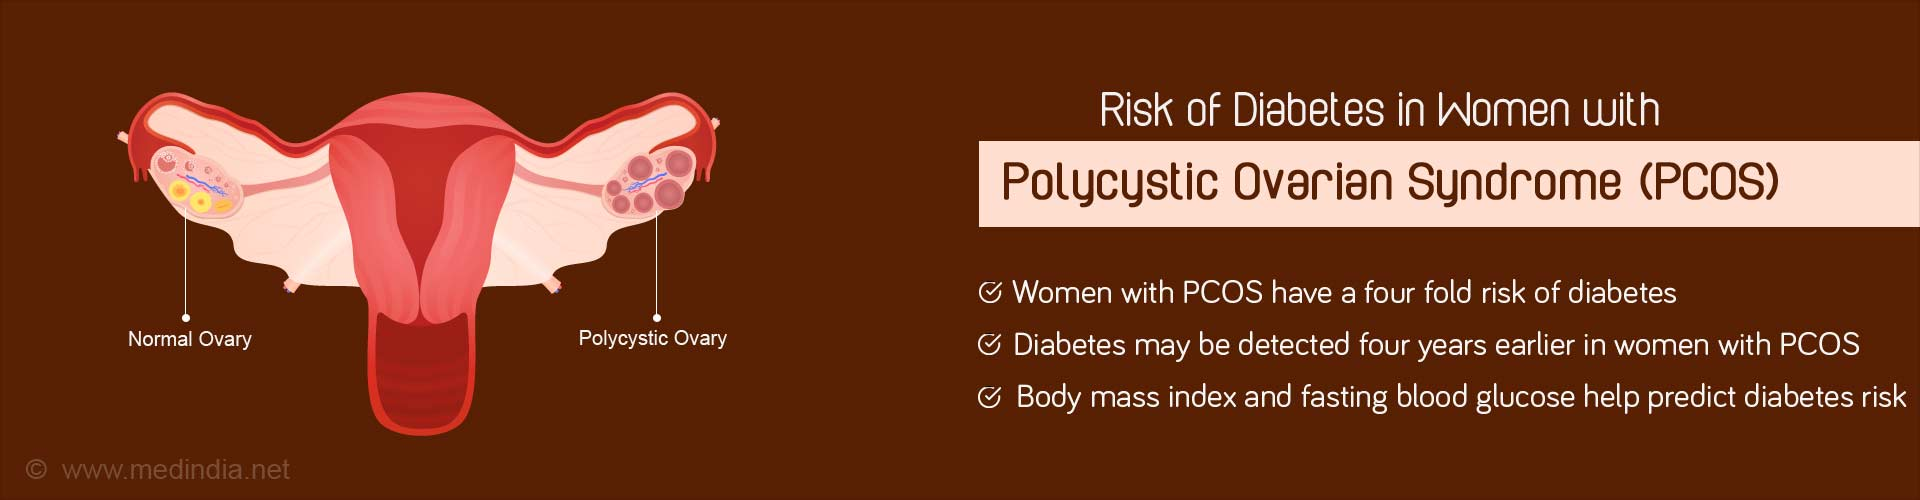 What Causes Diabetes in Women With Polycystic Ovarian Syndrome?